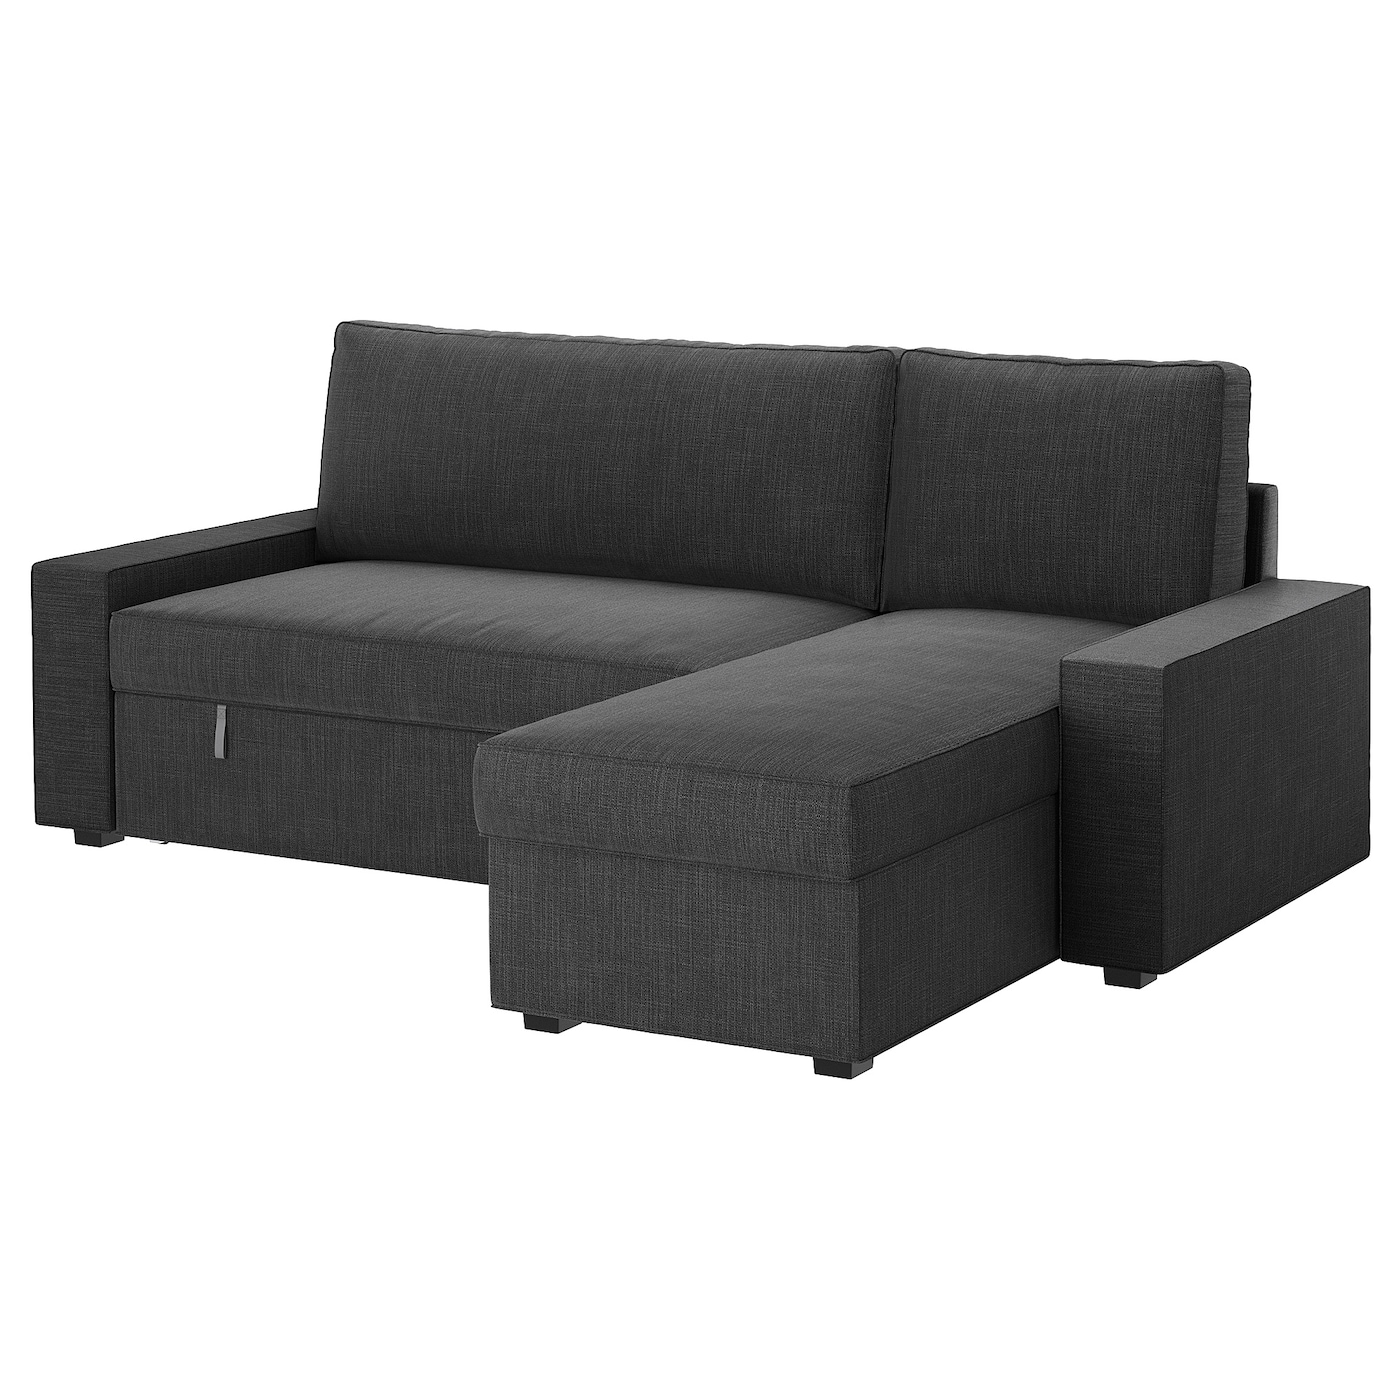 Vilasund sofa bed with chaise longue hillared anthracite for Sofa 160 breit